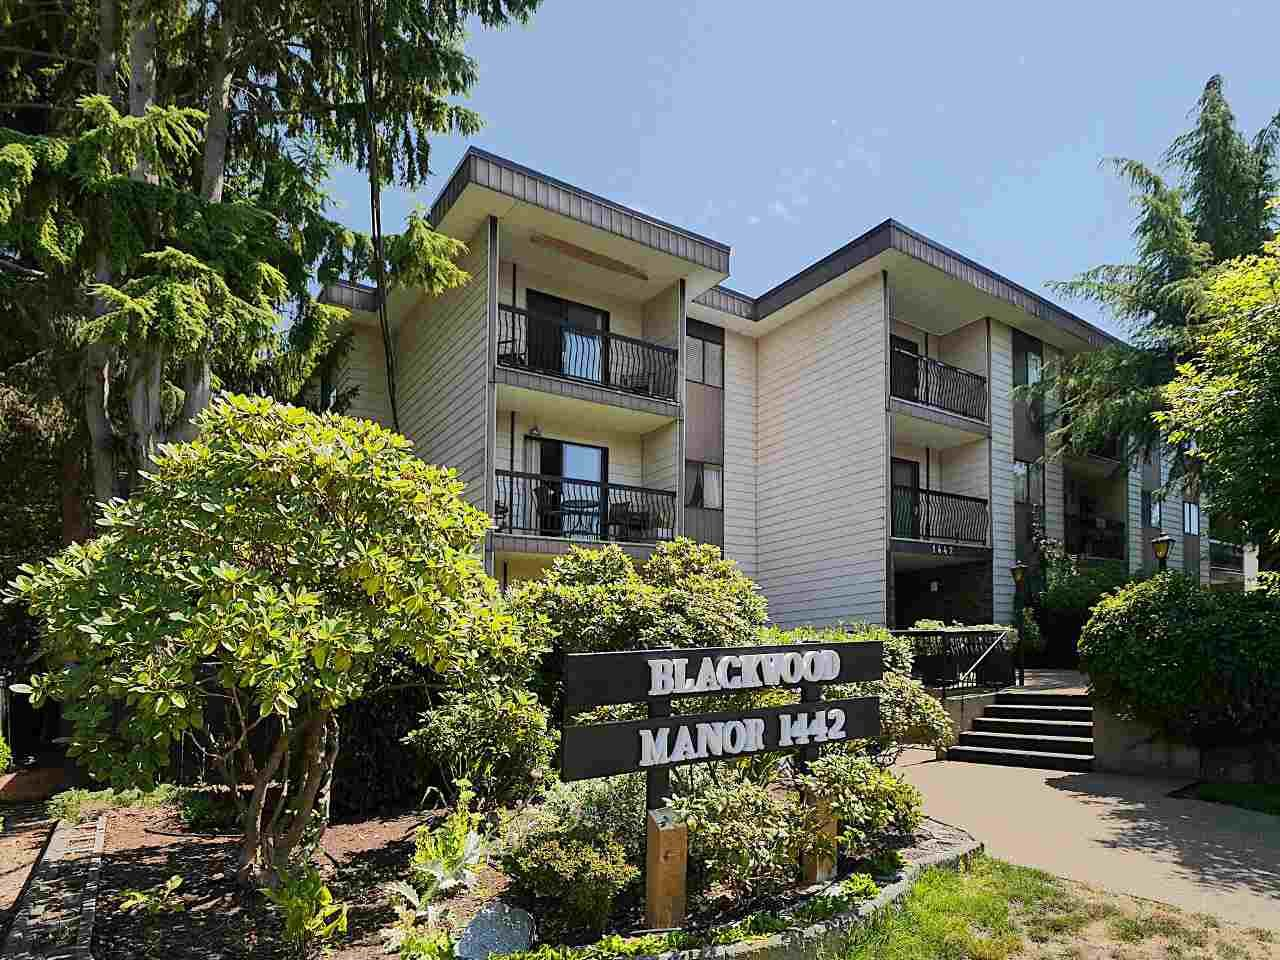 """Main Photo: 201 1442 BLACKWOOD Street: White Rock Condo for sale in """"Blackwood Manor"""" (South Surrey White Rock)  : MLS®# R2292905"""